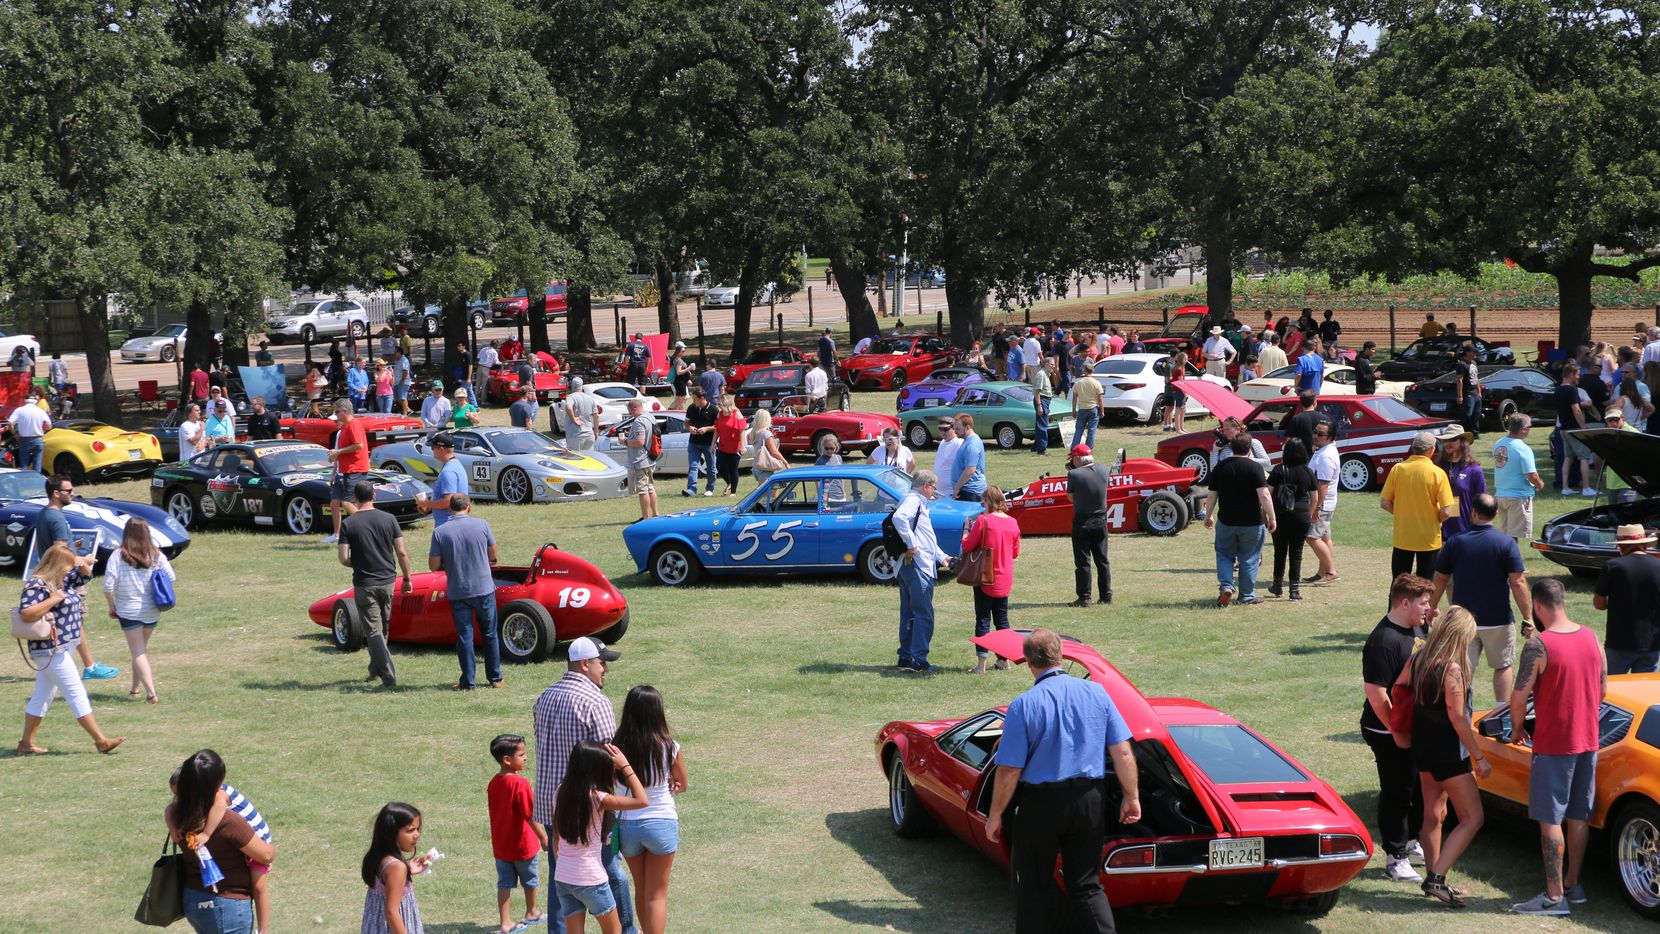 ItalianCarFest, with more than 90 cars on view, is a prelude event to this year's GrapeFest in Grapevine.